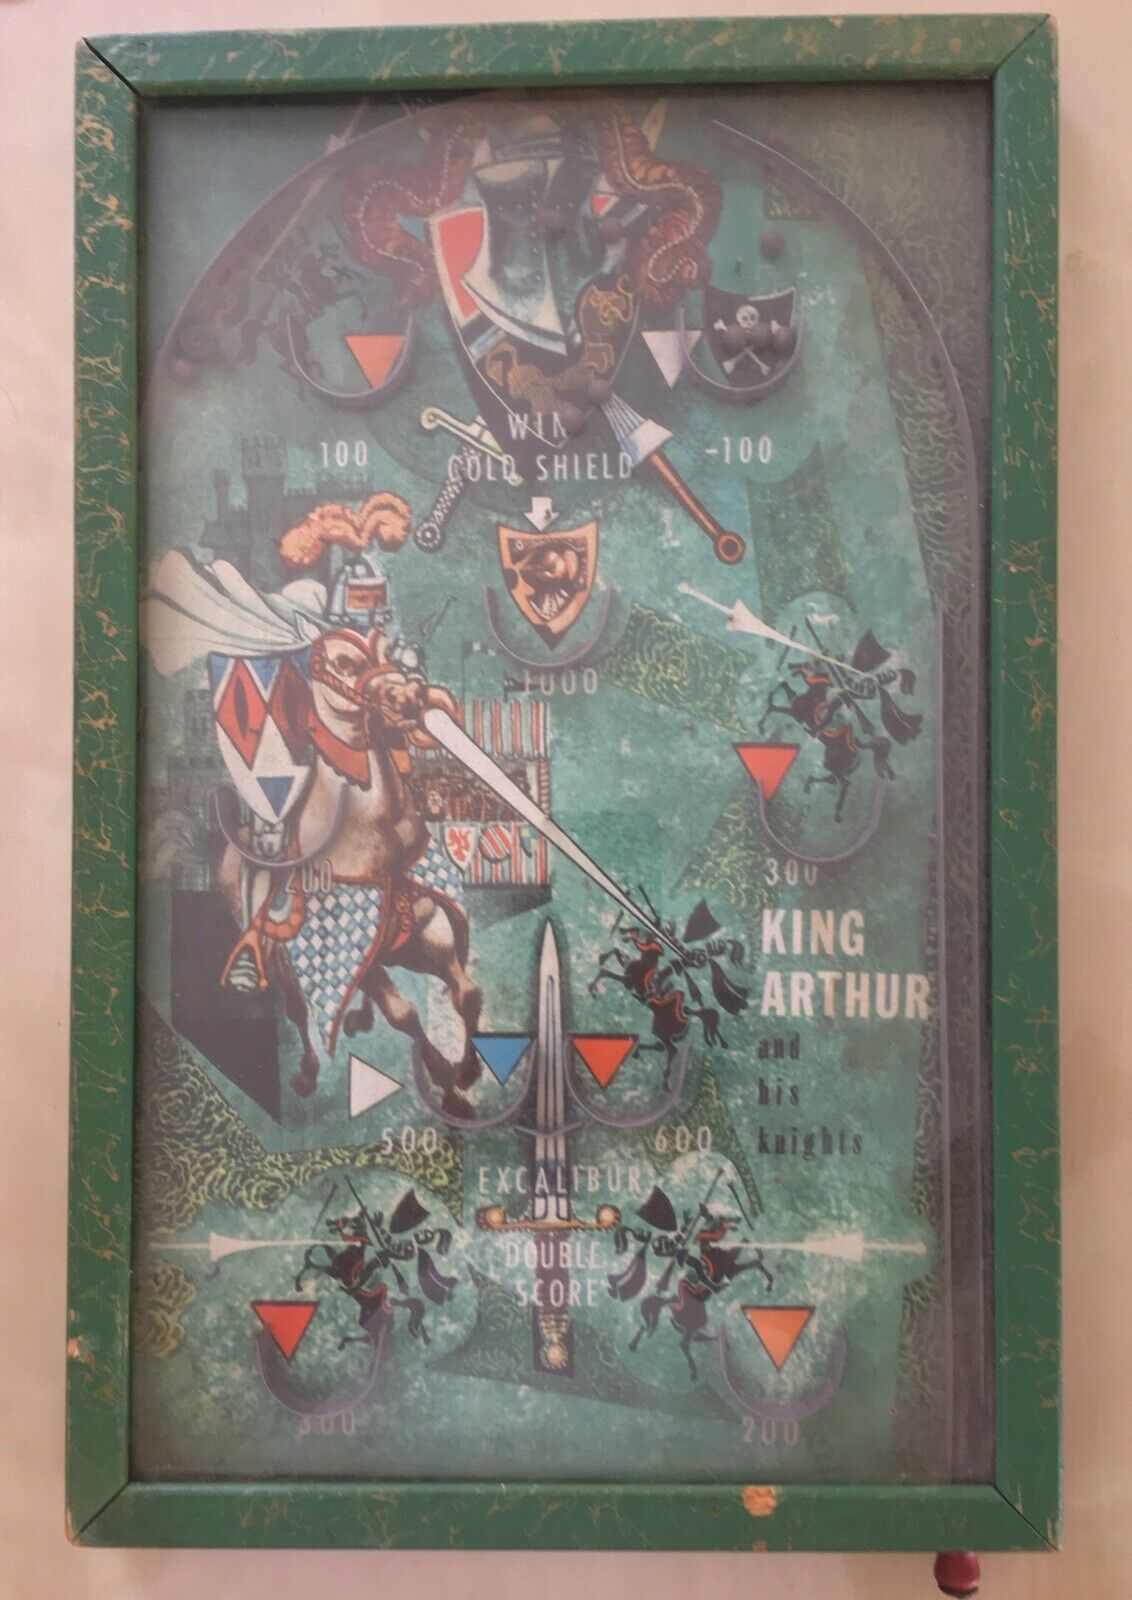 KING ARTHUR VINTAGE WOODEN PINBALL GAME 1950'S Collectible fully functional